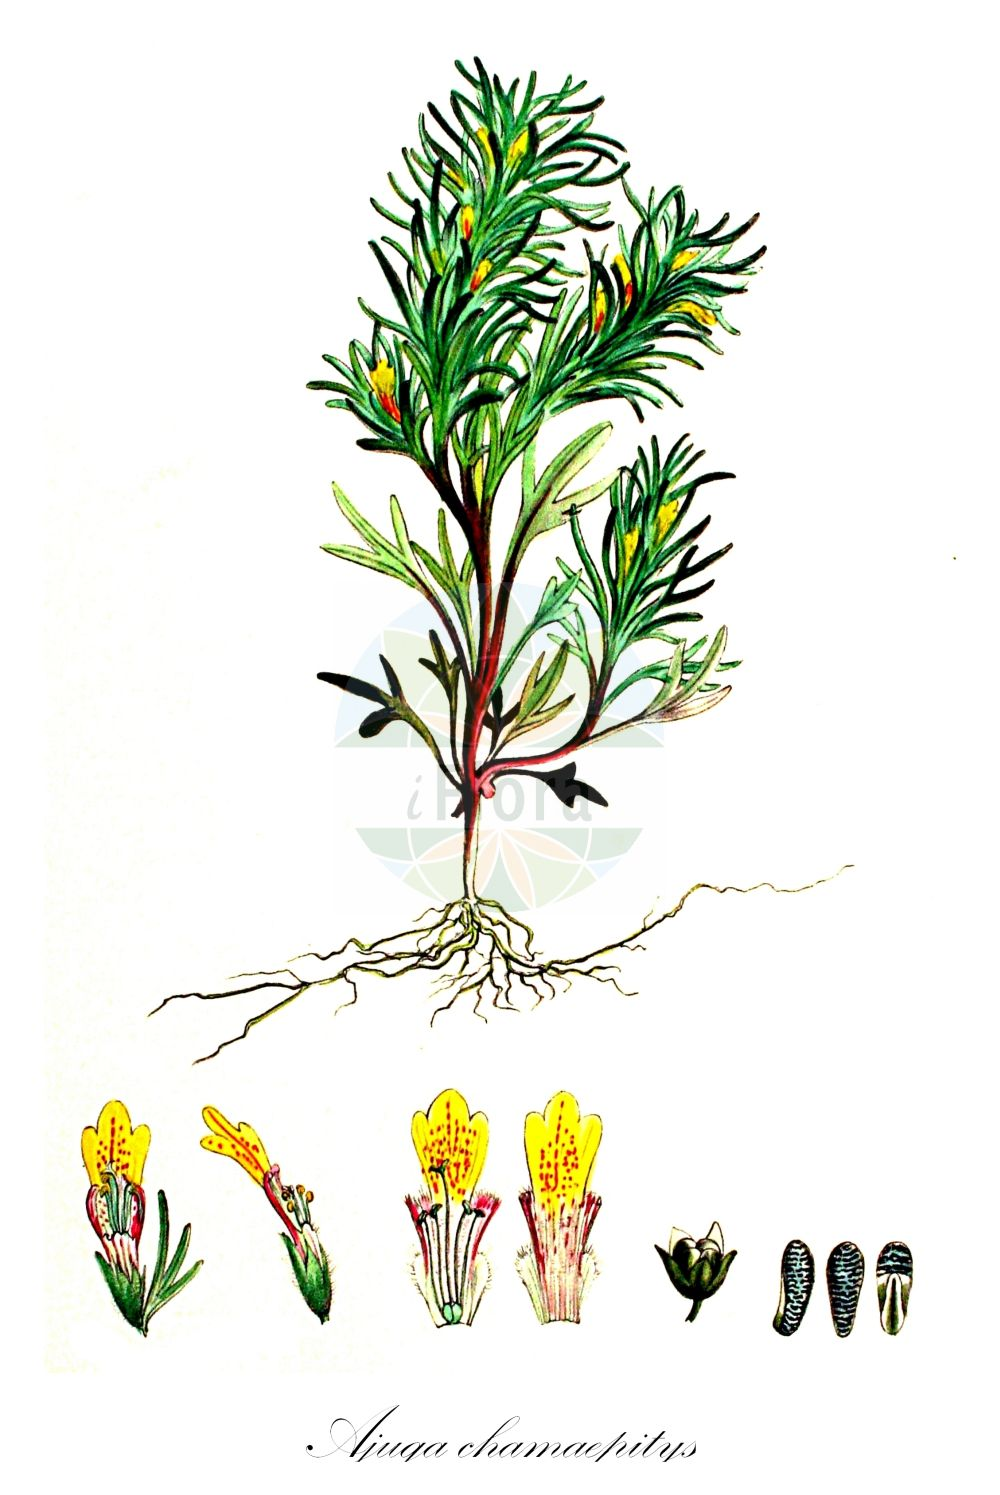 Historische Abbildung von Ajuga chamaepitys (Gelber Guensel - Ground-pine). Das Bild zeigt Blatt, Bluete, Frucht und Same. ---- Historical Drawing of Ajuga chamaepitys (Gelber Guensel - Ground-pine).The image is showing leaf, flower, fruit and seed.(Ajuga chamaepitys,Gelber Guensel,Ground-pine,Bugula chamaepithys,Bulga chamaepitys,Chamaepitys vulgaris,Teucrium chamaepitys,Acker-Guensel,Schlagkraeutlein,Yellow Bugle,Ajuga,Guensel,Bugle,Lamiaceae,Lippenbluetengewaechse;Lippenbluetler,Nettle family,Blatt,Bluete,Frucht,Same,leaf,flower,fruit,seed,Kops (1800-1934))